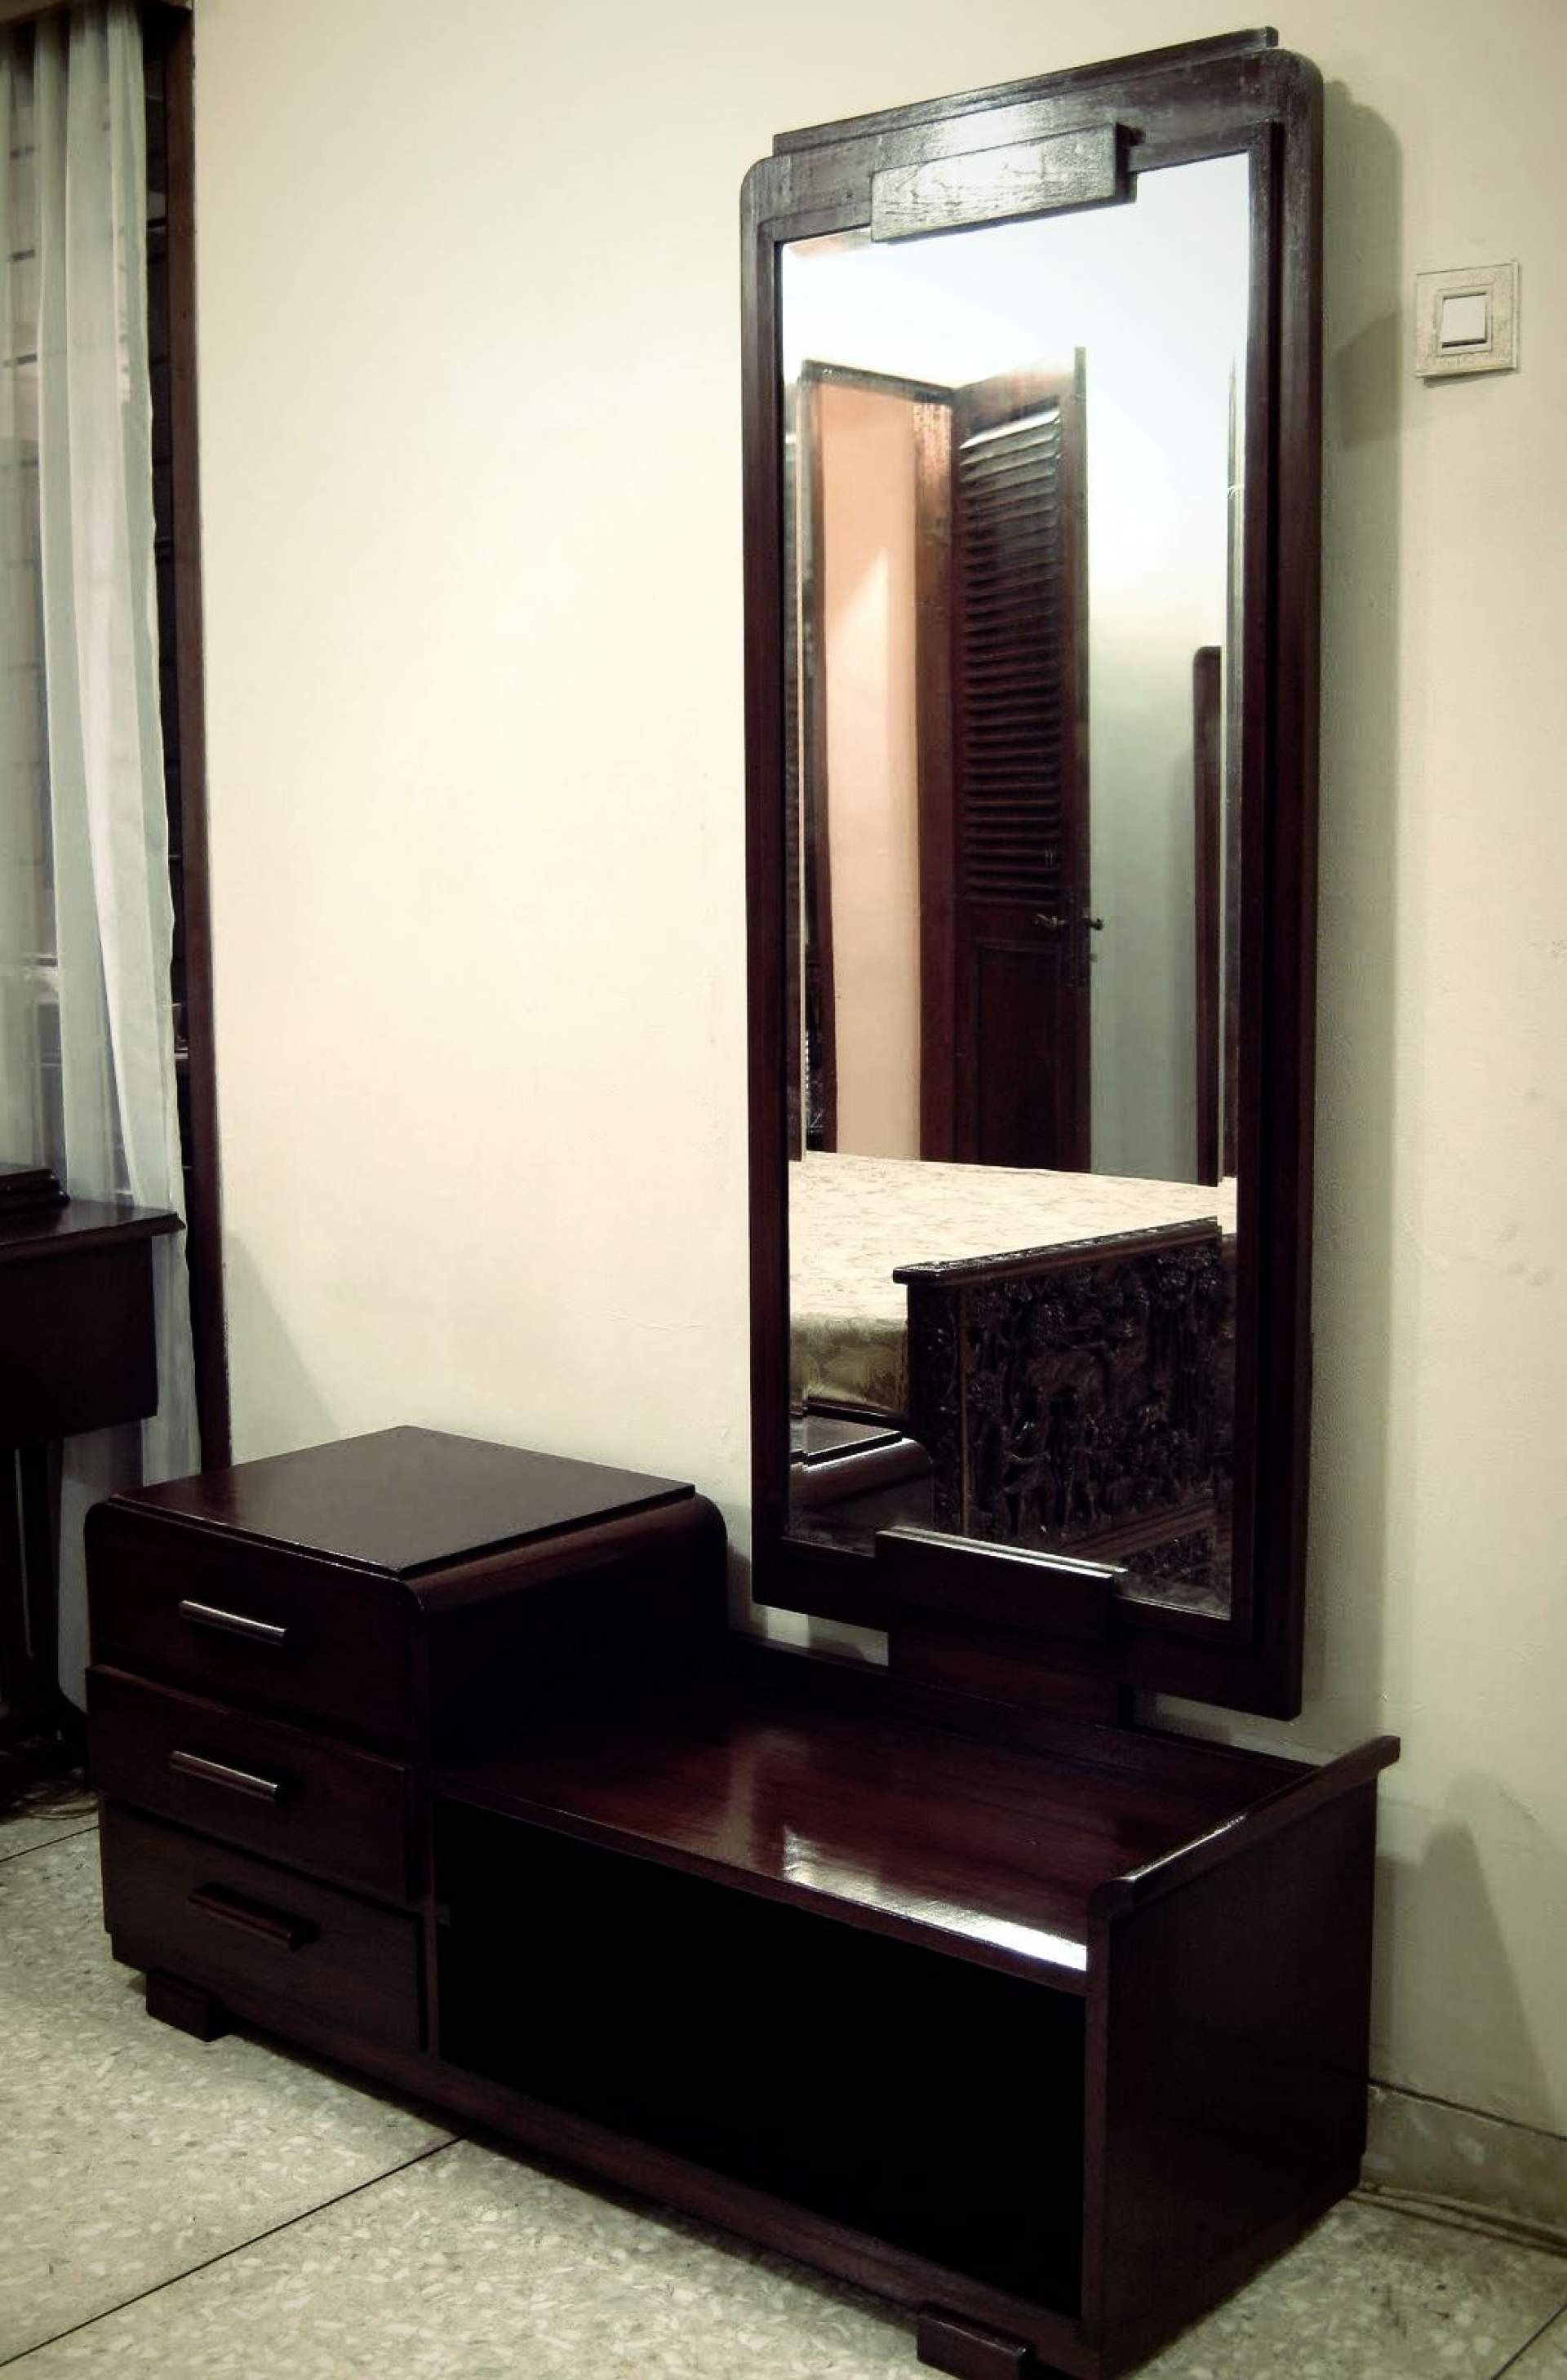 Bedroom Furniture Oval Wall Mirror Huge Mirror Giant Mirror Inside Huge Full Length Mirror (Image 3 of 15)